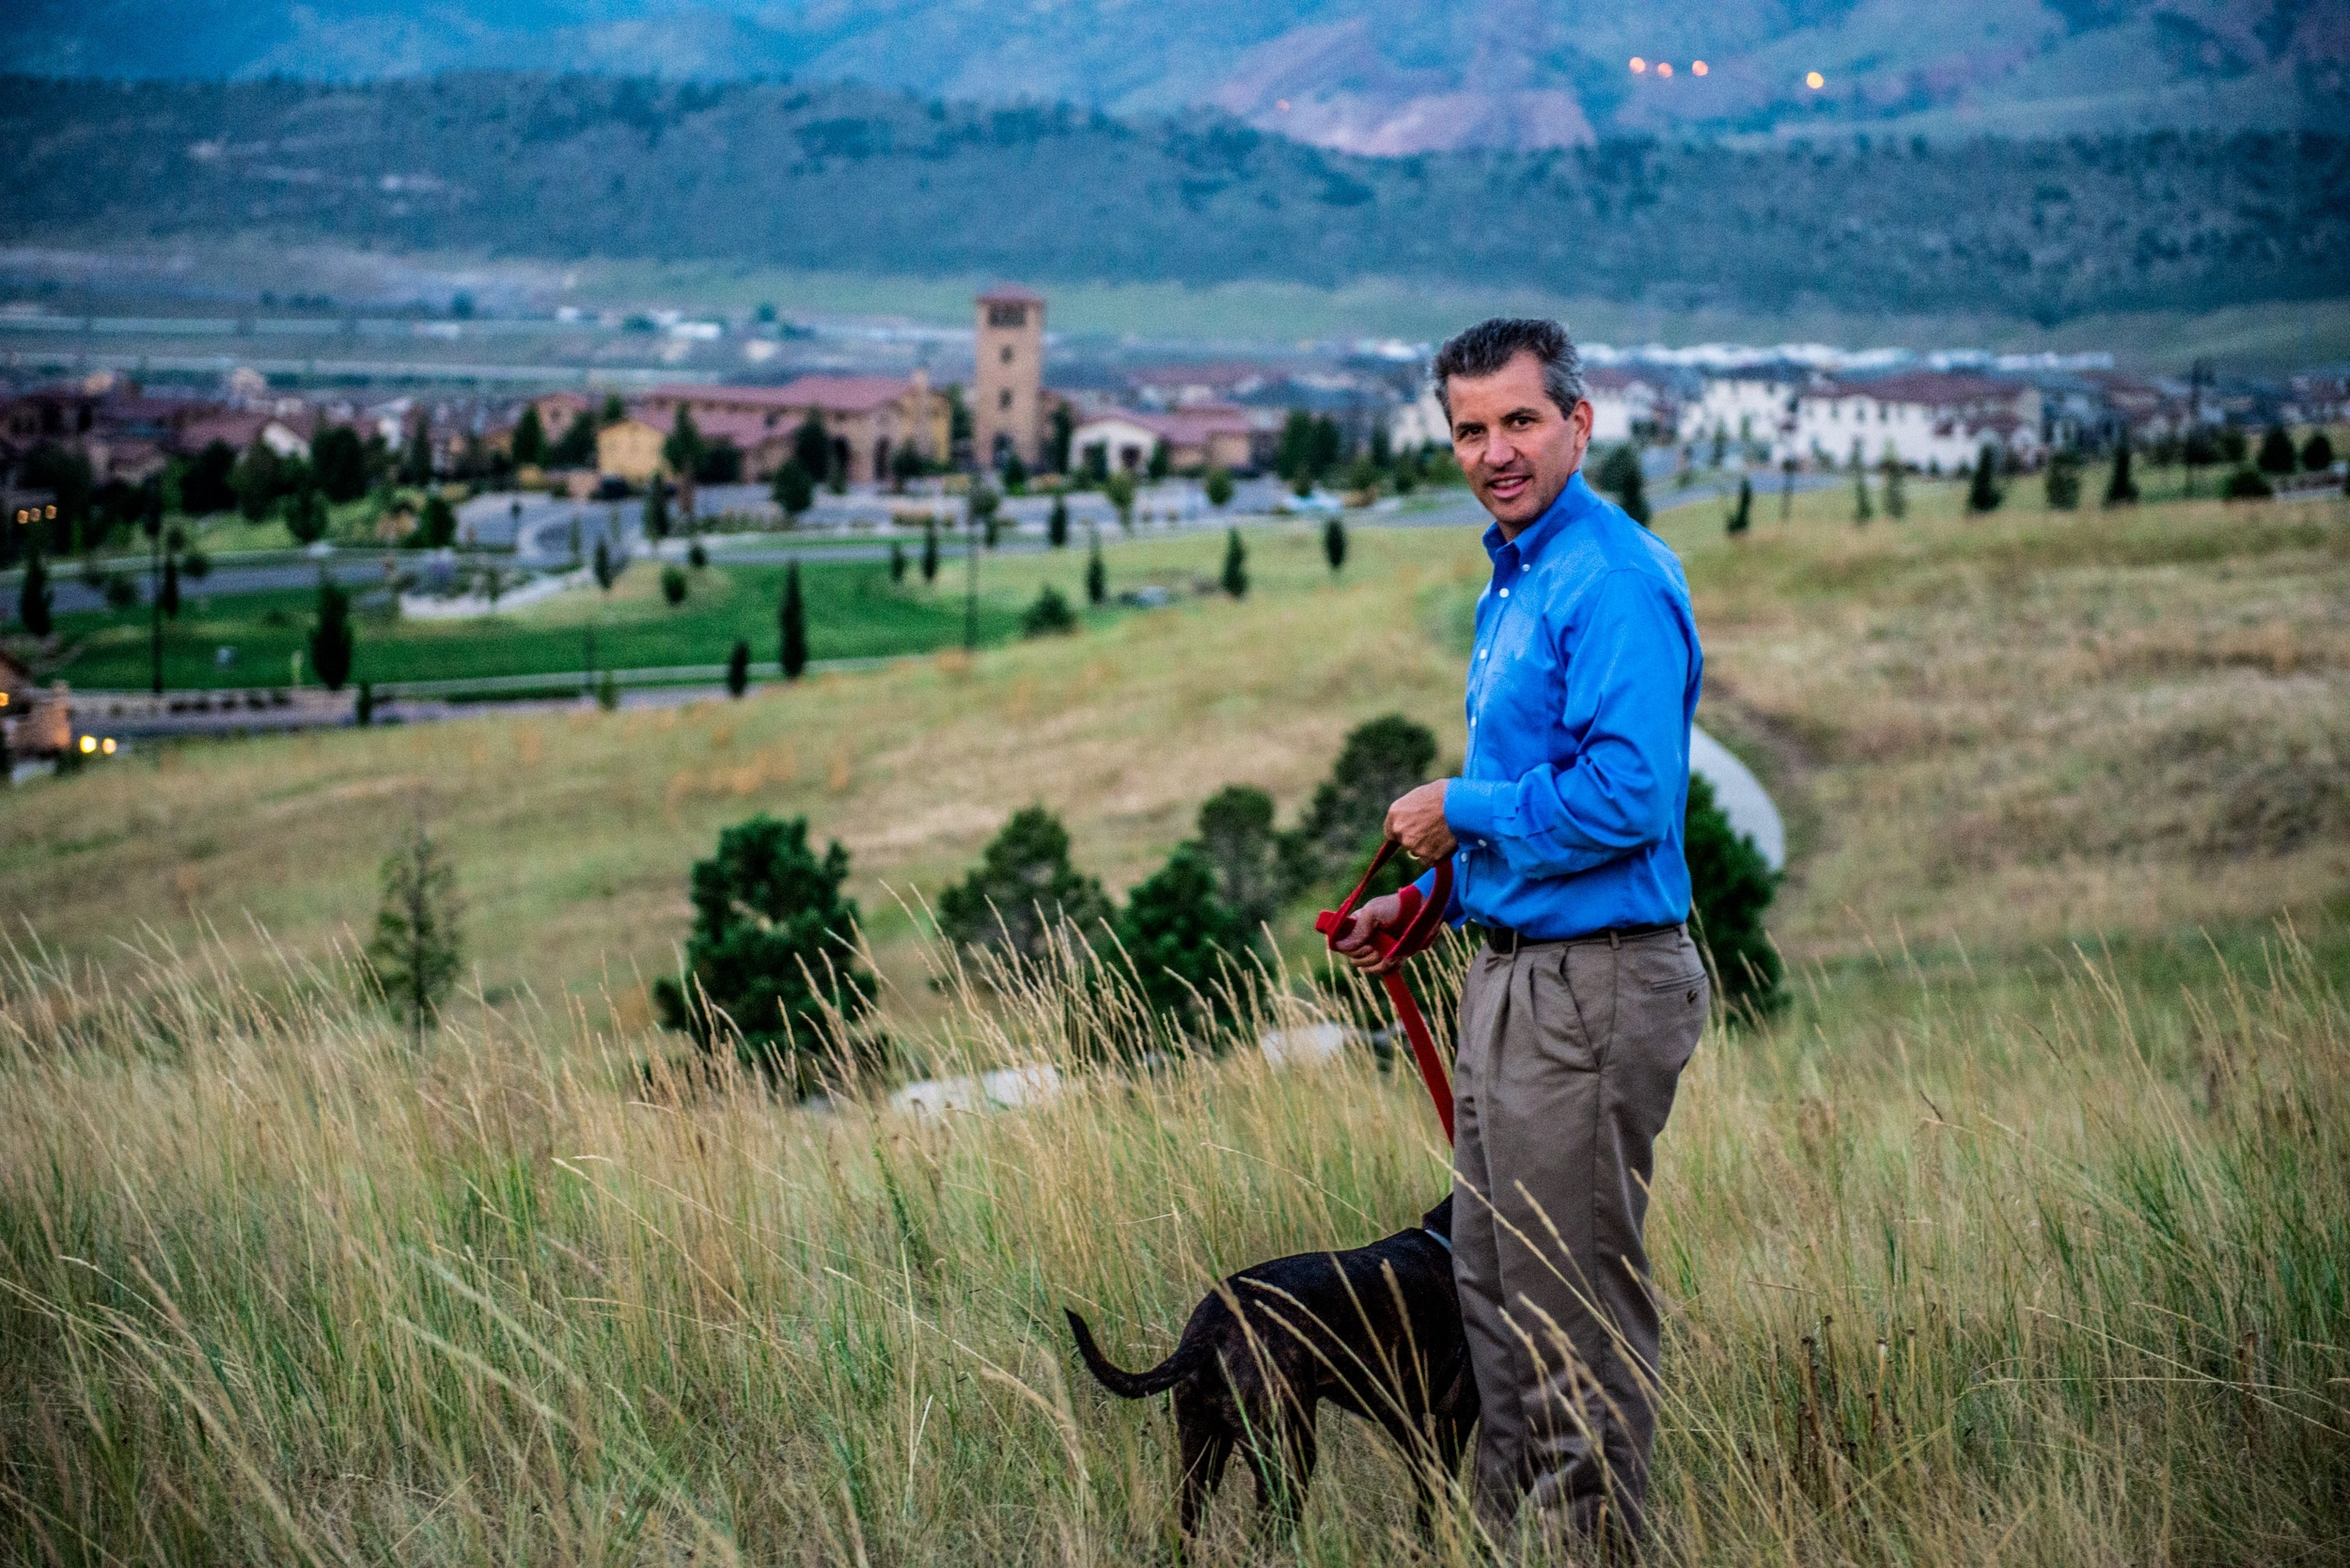 Re/Max realtor Andrew Nagel with his dog in the open space overlooking Solterra